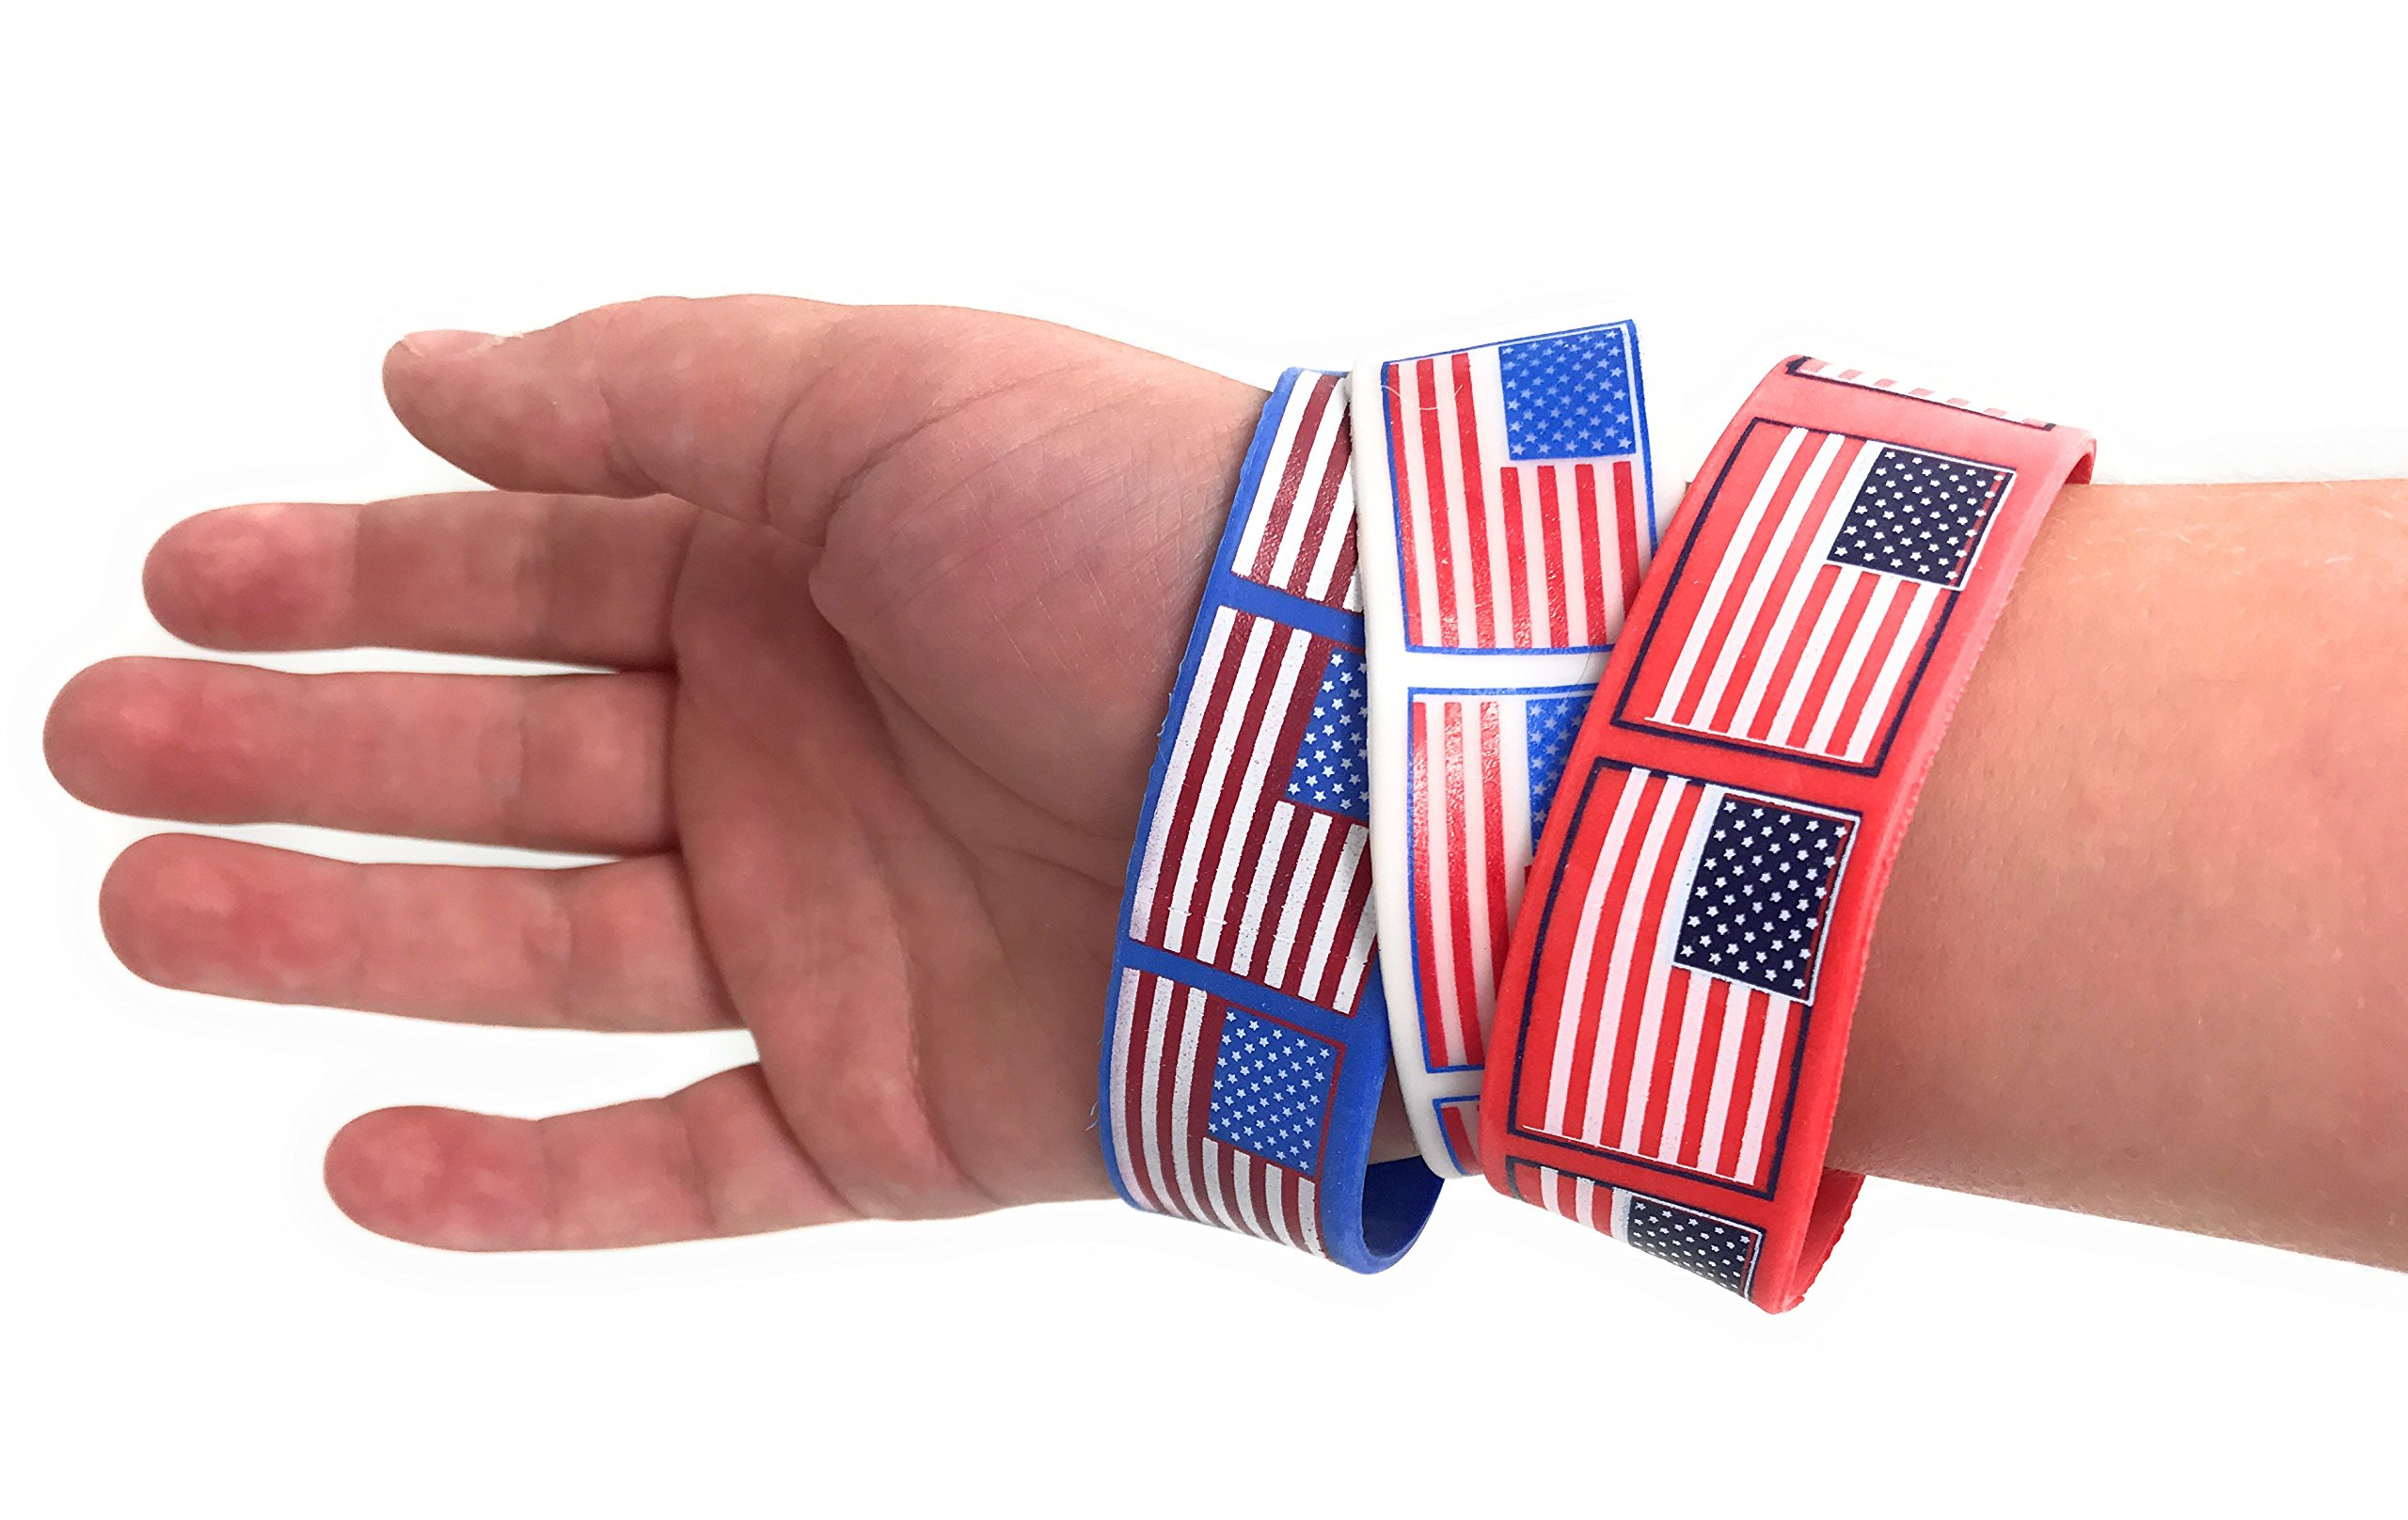 Bulk 48 Pack of American Flag Bracelets - Ideal Party Favors for Fourth of July Parades, 4th of July Parties, BBQ's, Picnics and Family Events by SVT (Image #3)